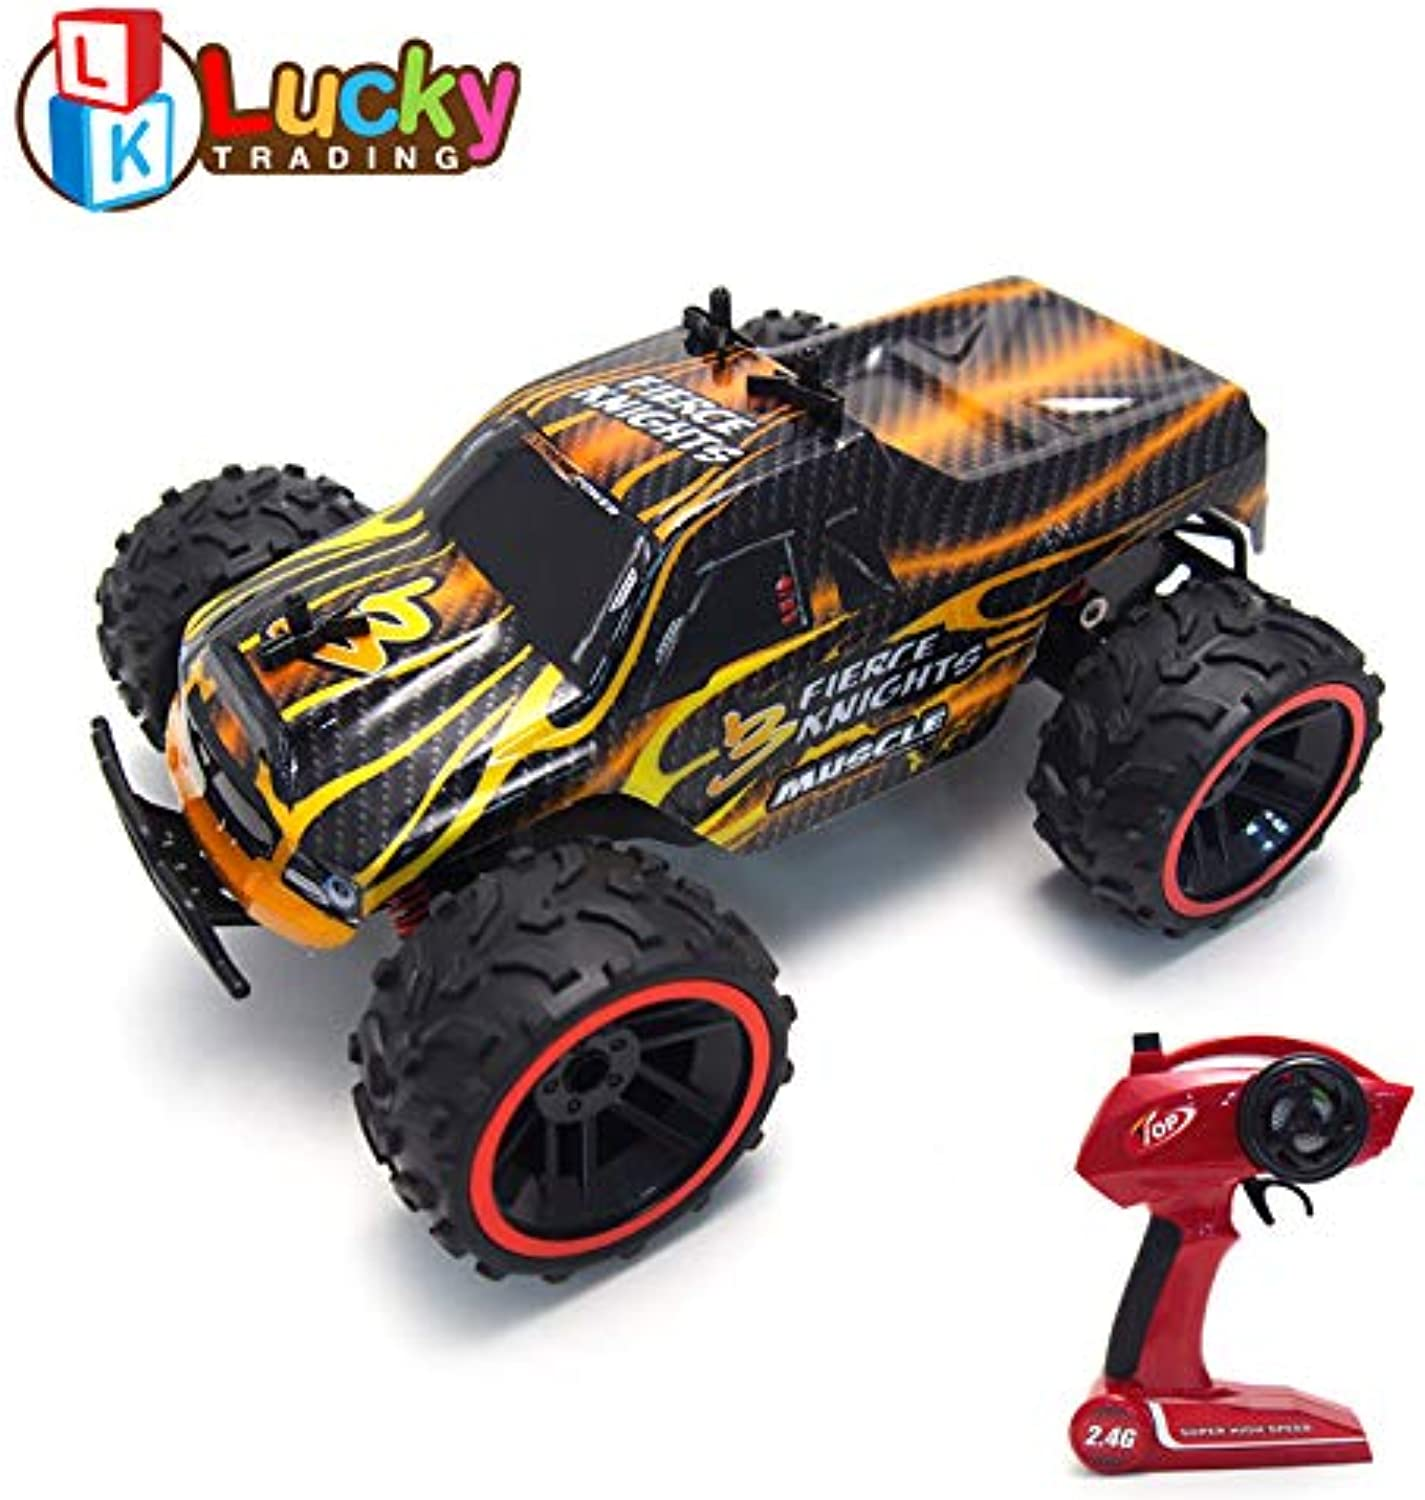 816014cc254b 1 16 Scale All Terrain RC Cars, High Speed 4WD Remote Truck for Kids ...